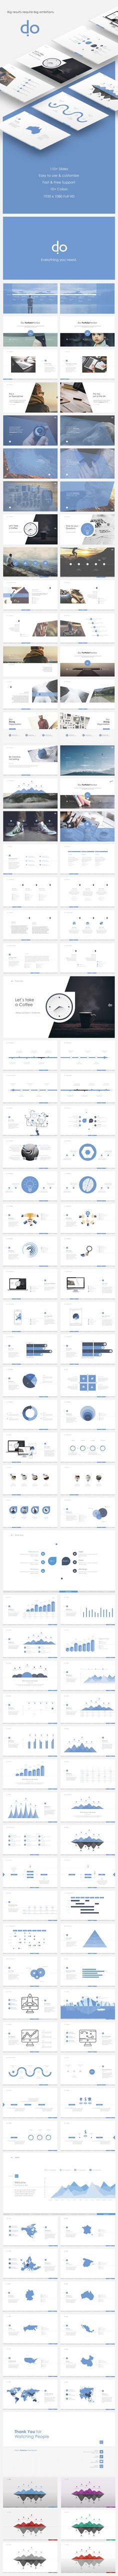 do Powerpoint Presentation Template. Download here: http://graphicriver.net/item/do-powerpoint-presentation/15649071?ref=ksioks